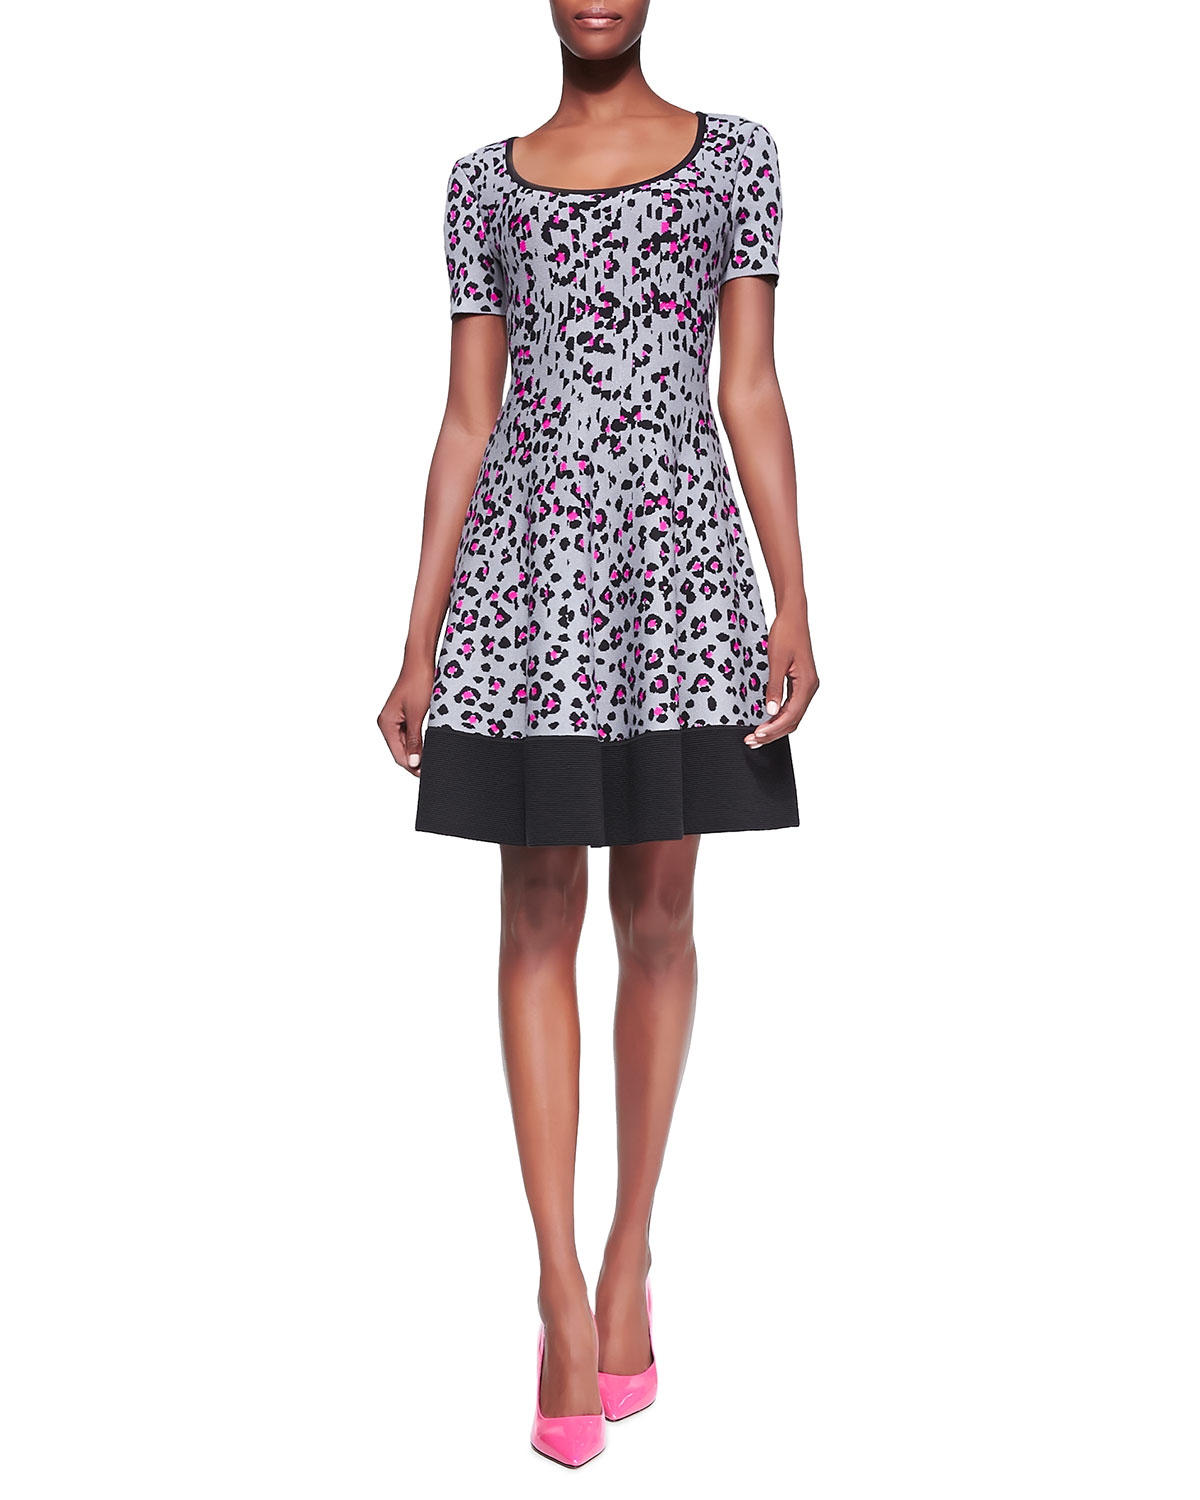 2bd1ca7b756 kate spade new york cyber leopard   cheetah-print sweater dress ...